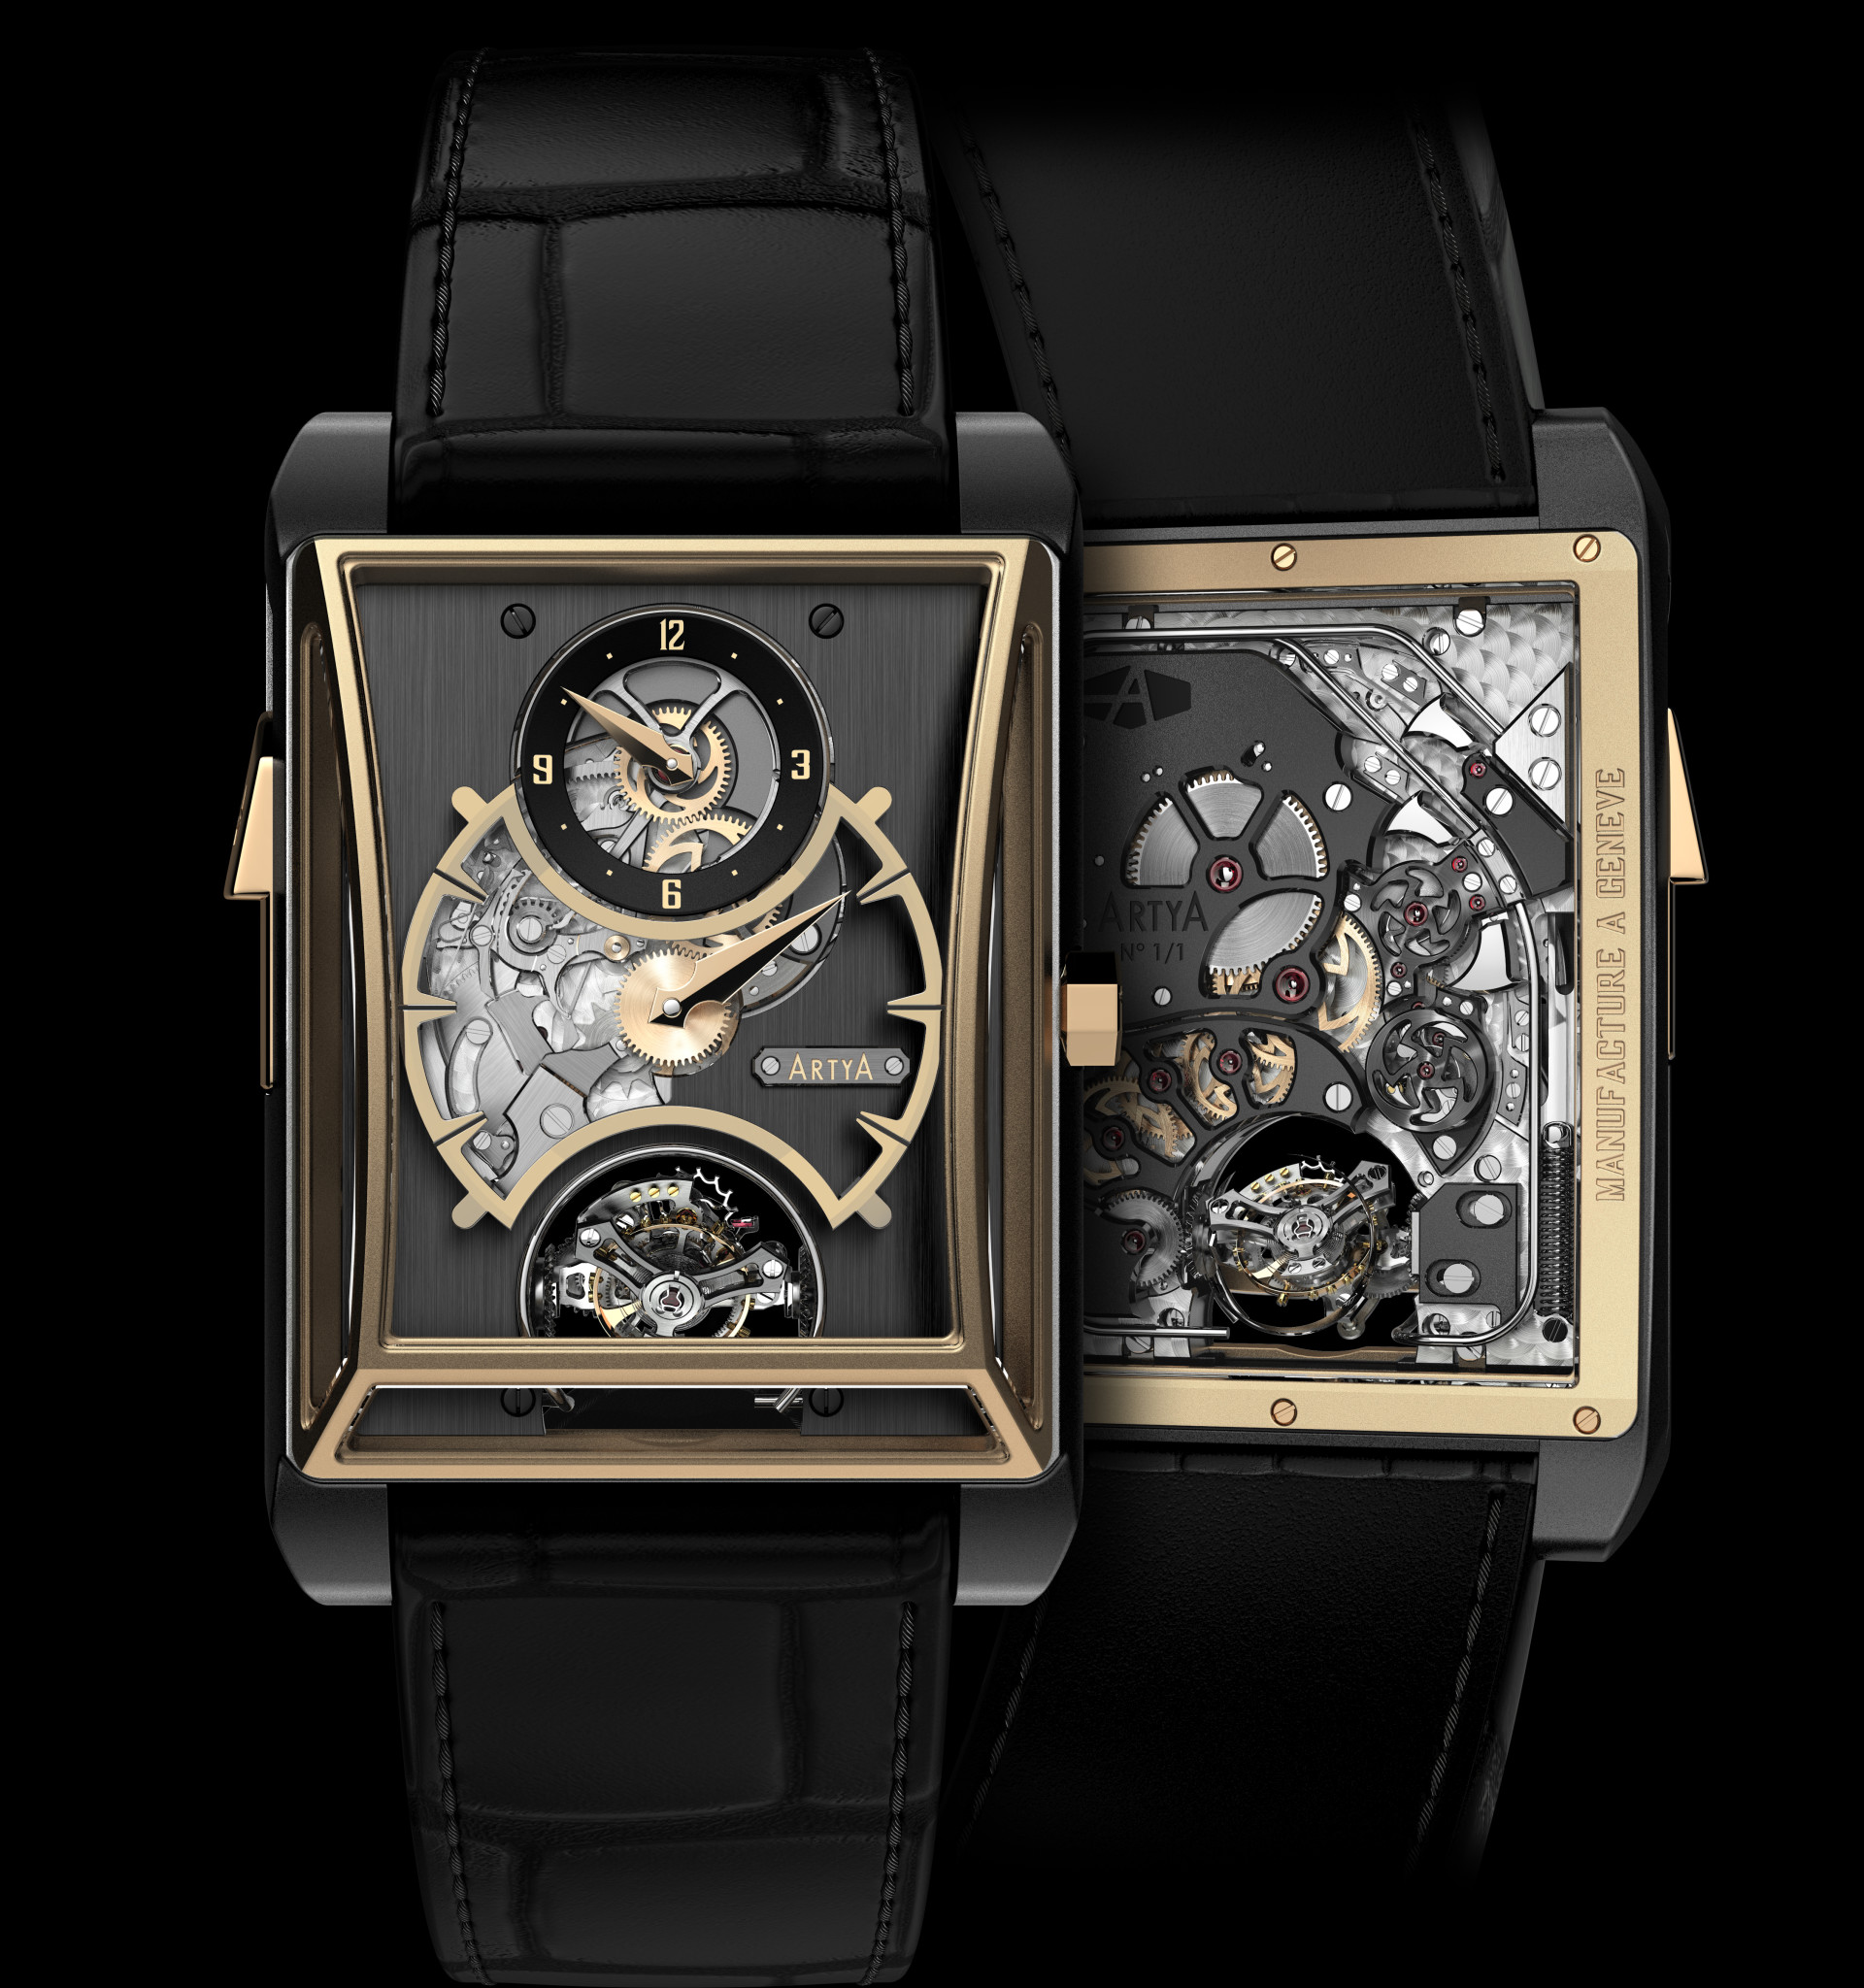 ArtyA 3 gongs minute repeater regulator and double axis tourbillon